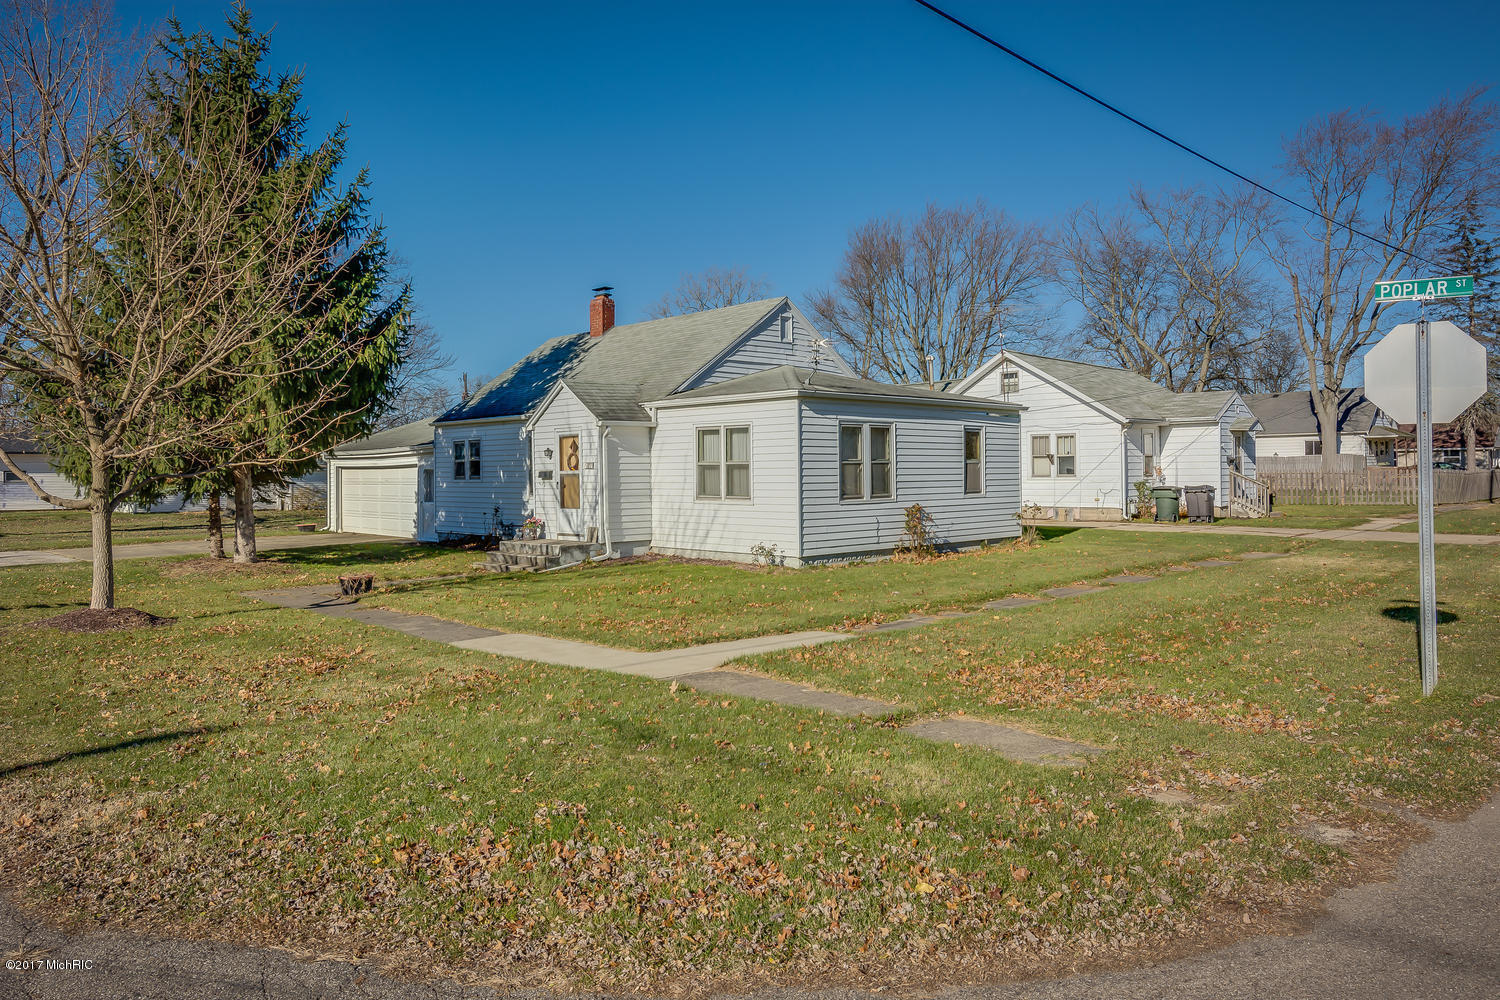 111 POPLAR STREET, THREE OAKS, MI 49128